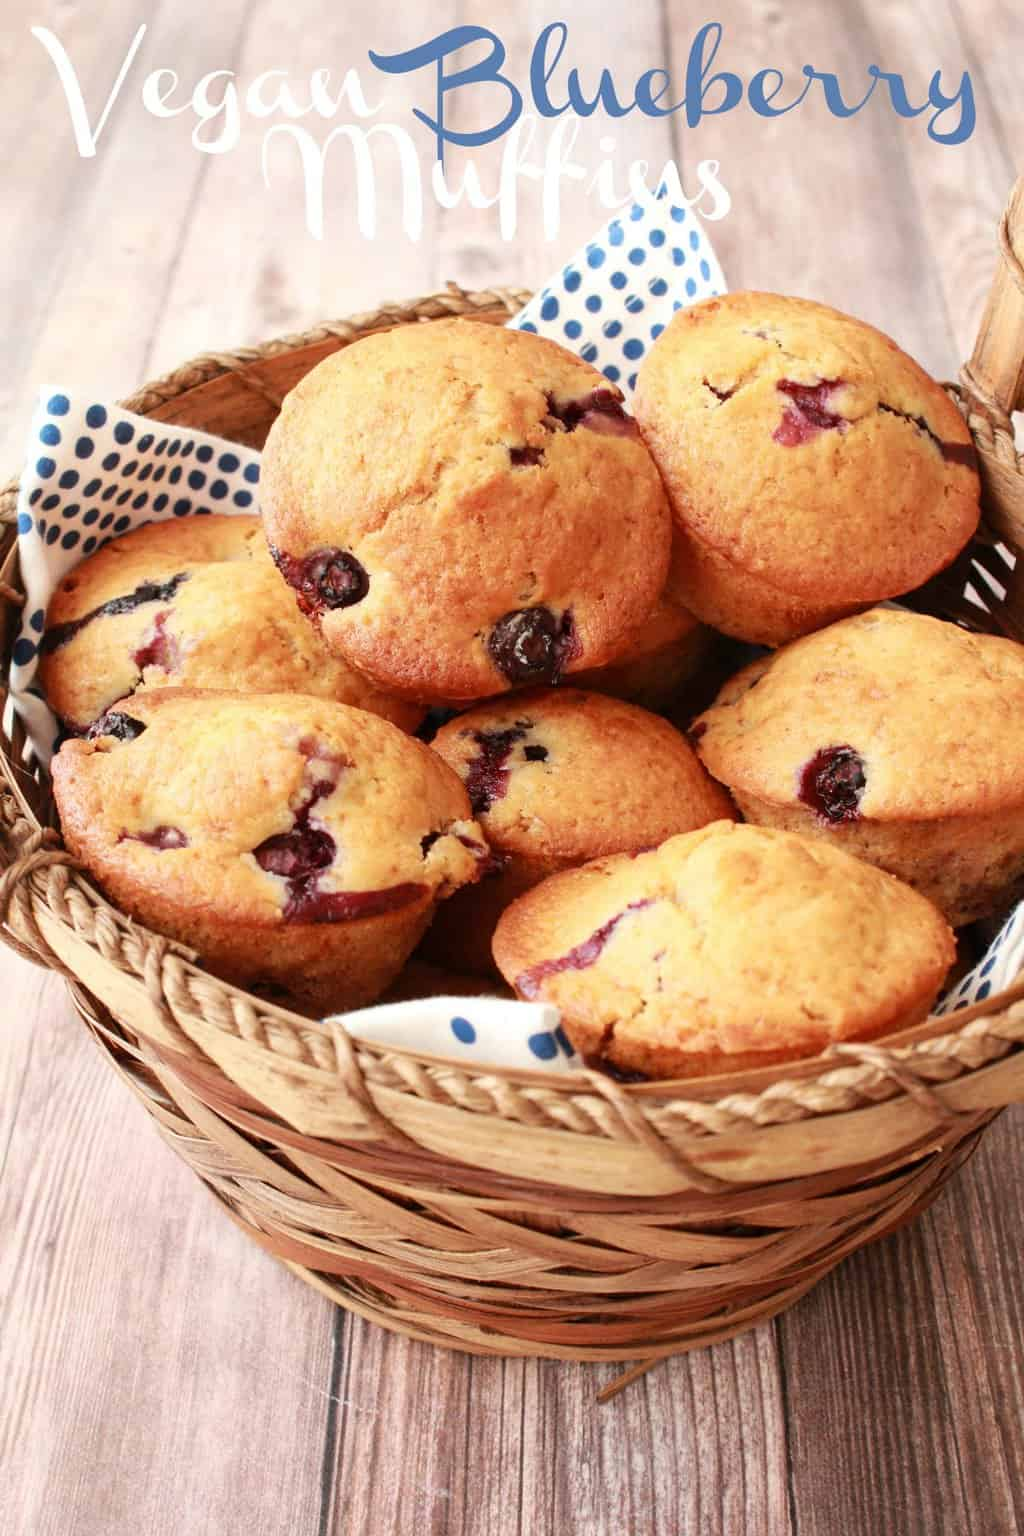 Vegan Blueberry Muffins. Deliciously moist and perfectly sweet! #vegan #lovingitvegan #muffins #blueberrymuffins #breakfast